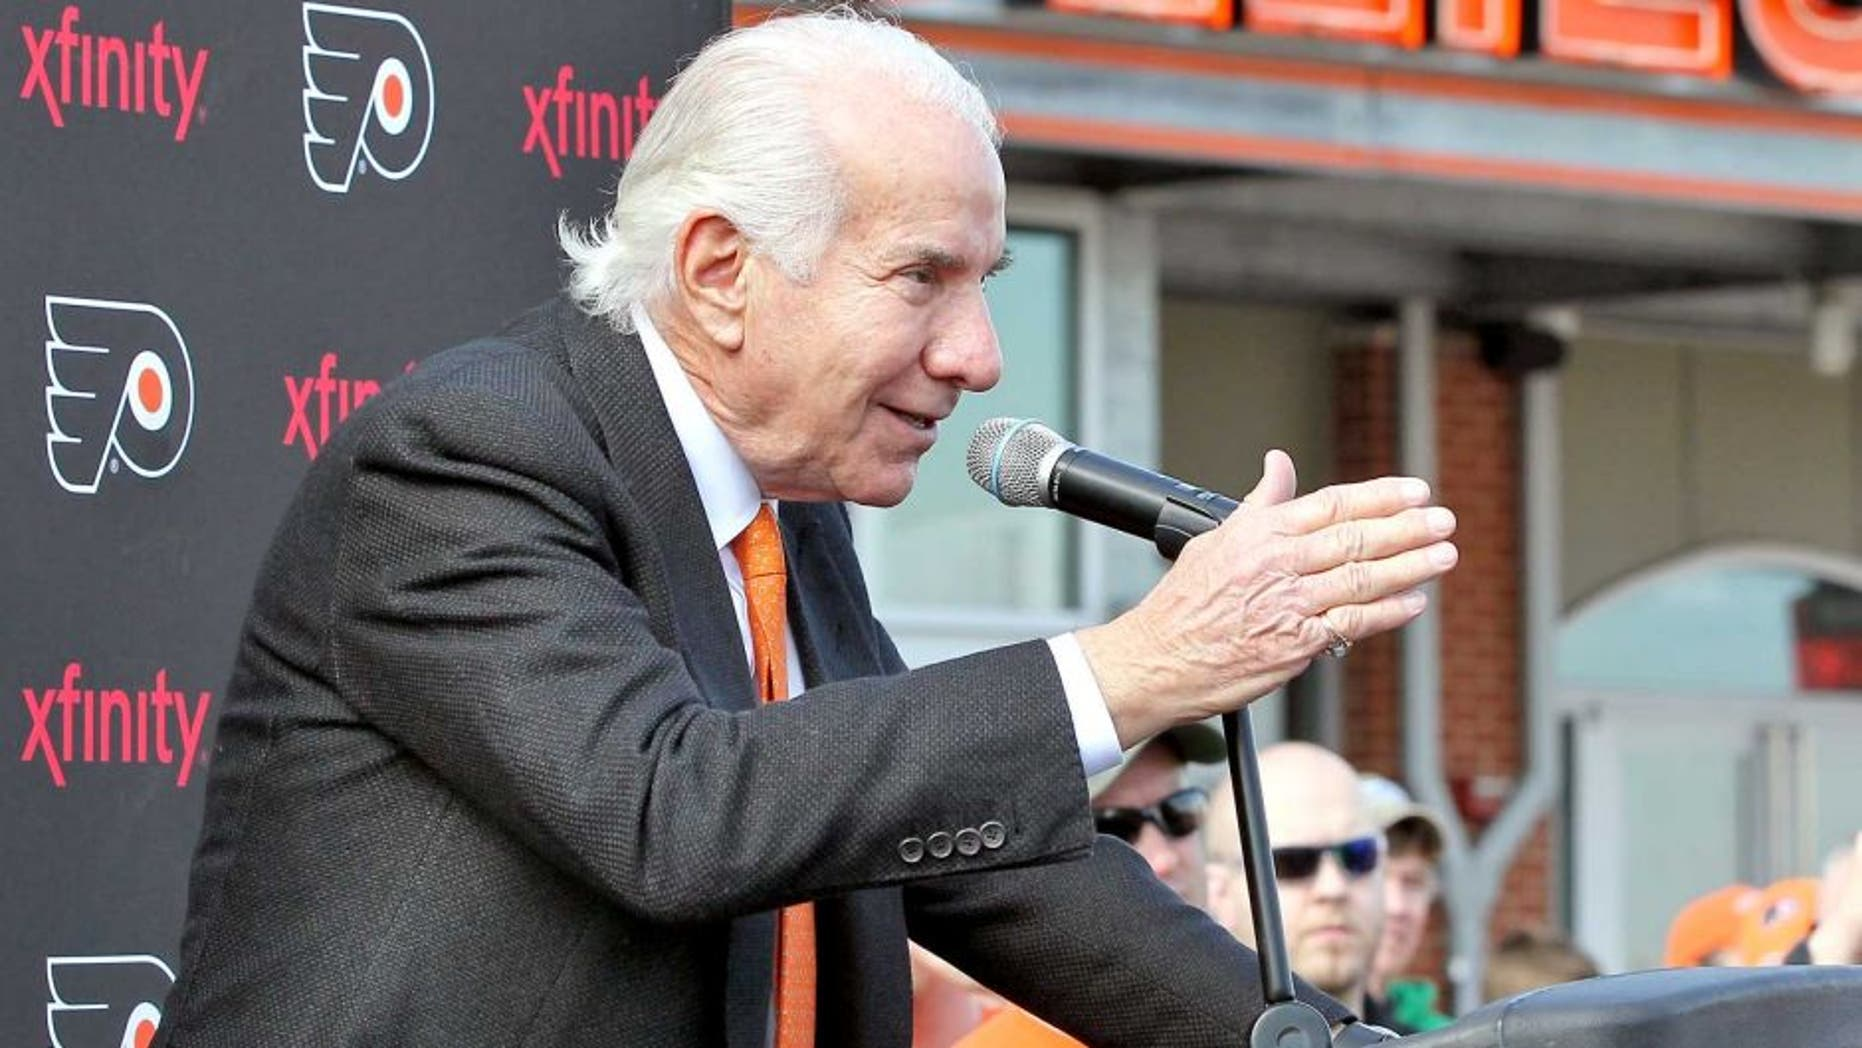 PHILADELPHIA, PA - MARCH 15: Philadelphia Flyers Chairman Ed Snider speaks at the unveiling of a statue of Hockey Hall-of-Famer Fred Shero at Xfinity Live outside of the Wells Fargo Center on March 15, 2014 in Philadelphia, Pennsylvania. The Flyers would go on to defeat the Penguins 4-0. (Photo by Len Redkoles/NHLI via Getty Images) *** Local Caption *** Ed Snider;Fred Shero